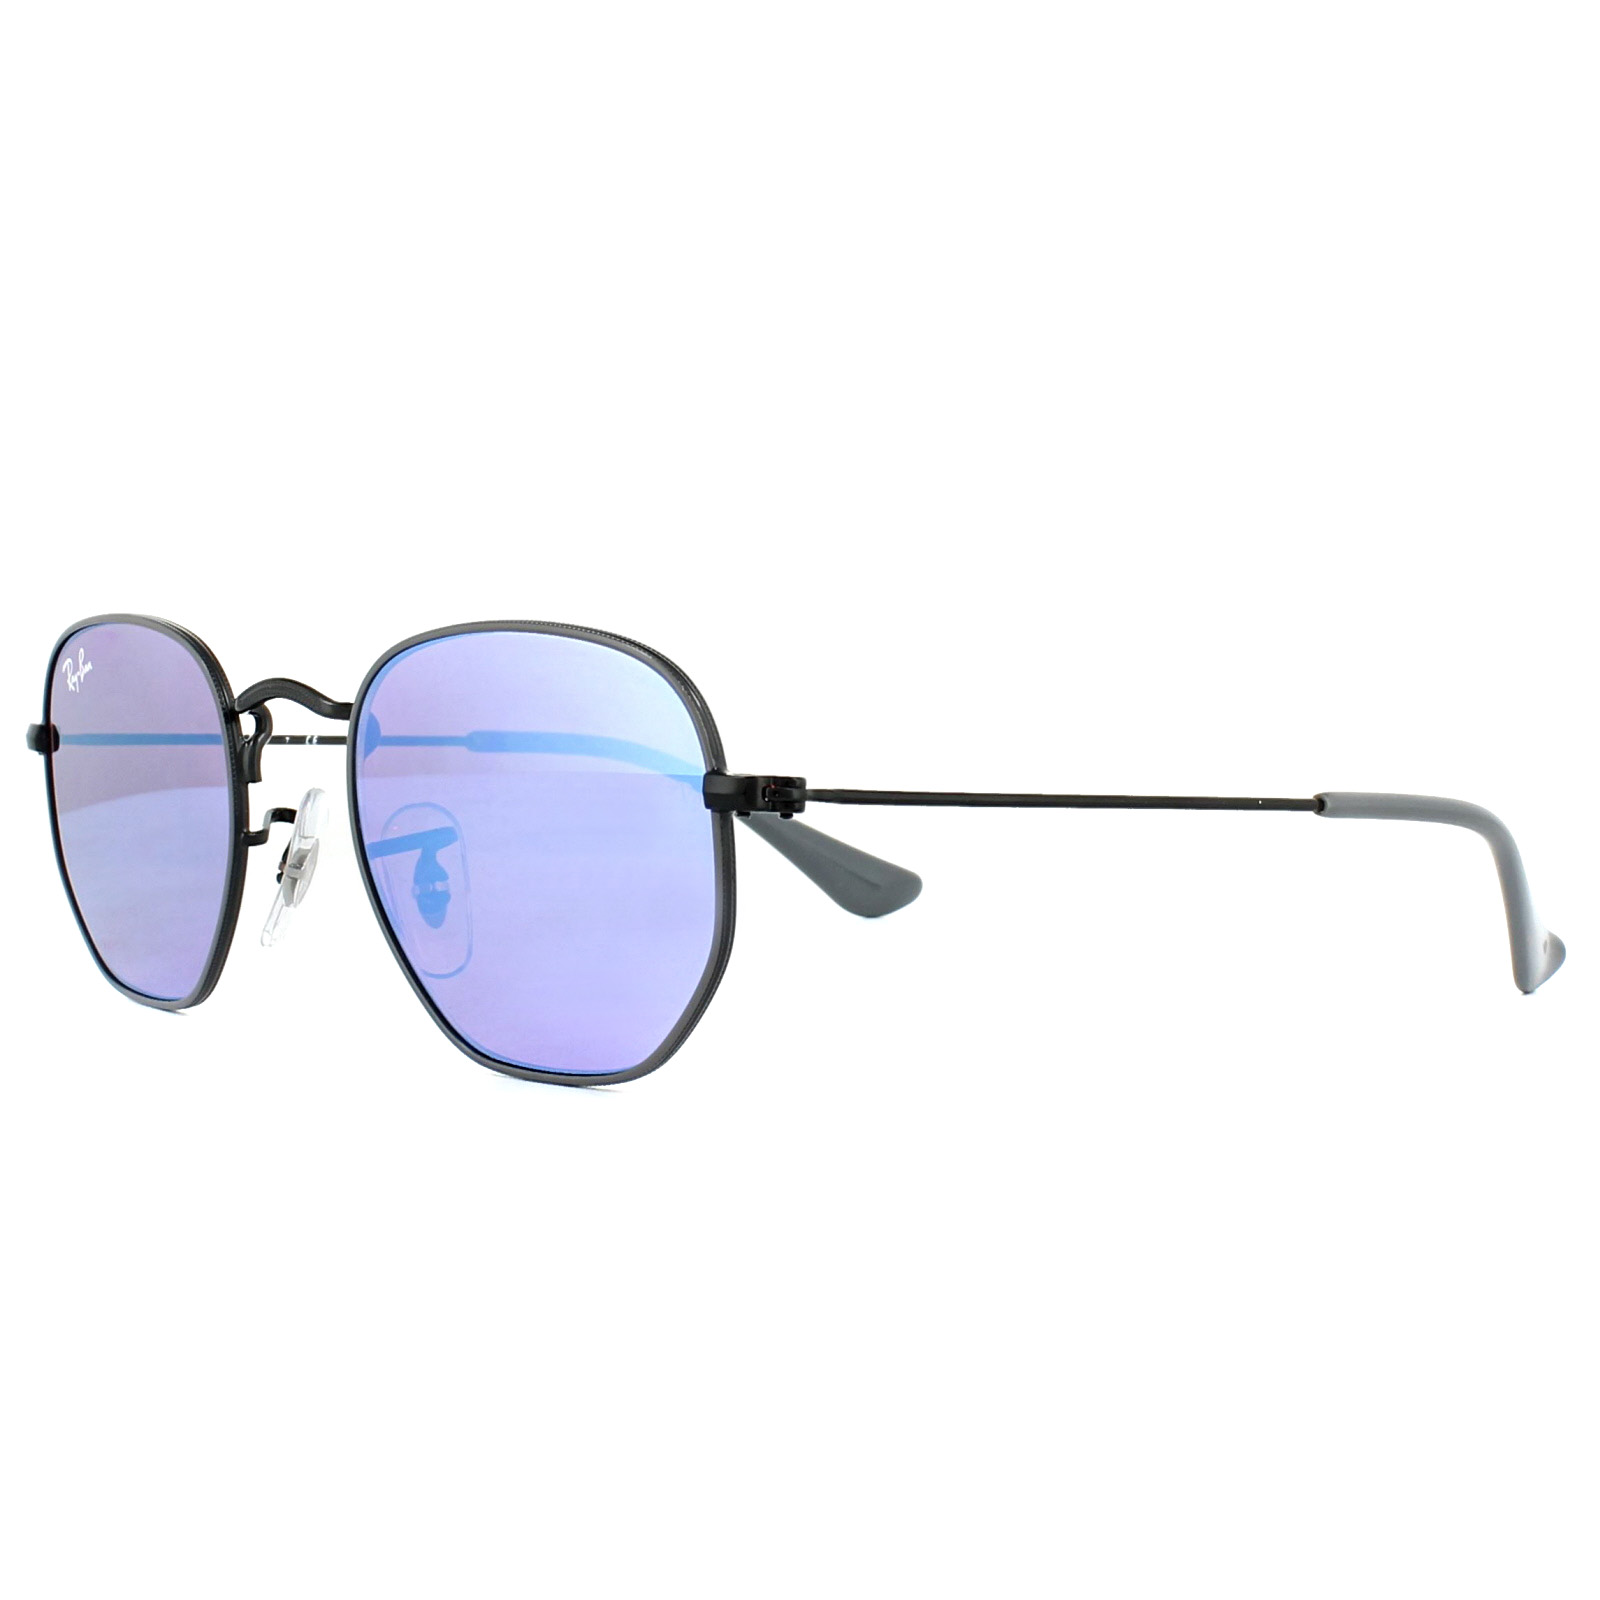 ed3098a3b12771 Sentinel Ray-Ban Junior Sunglasses 9541SN 261 7V Grey Black Violet Blue  Mirror